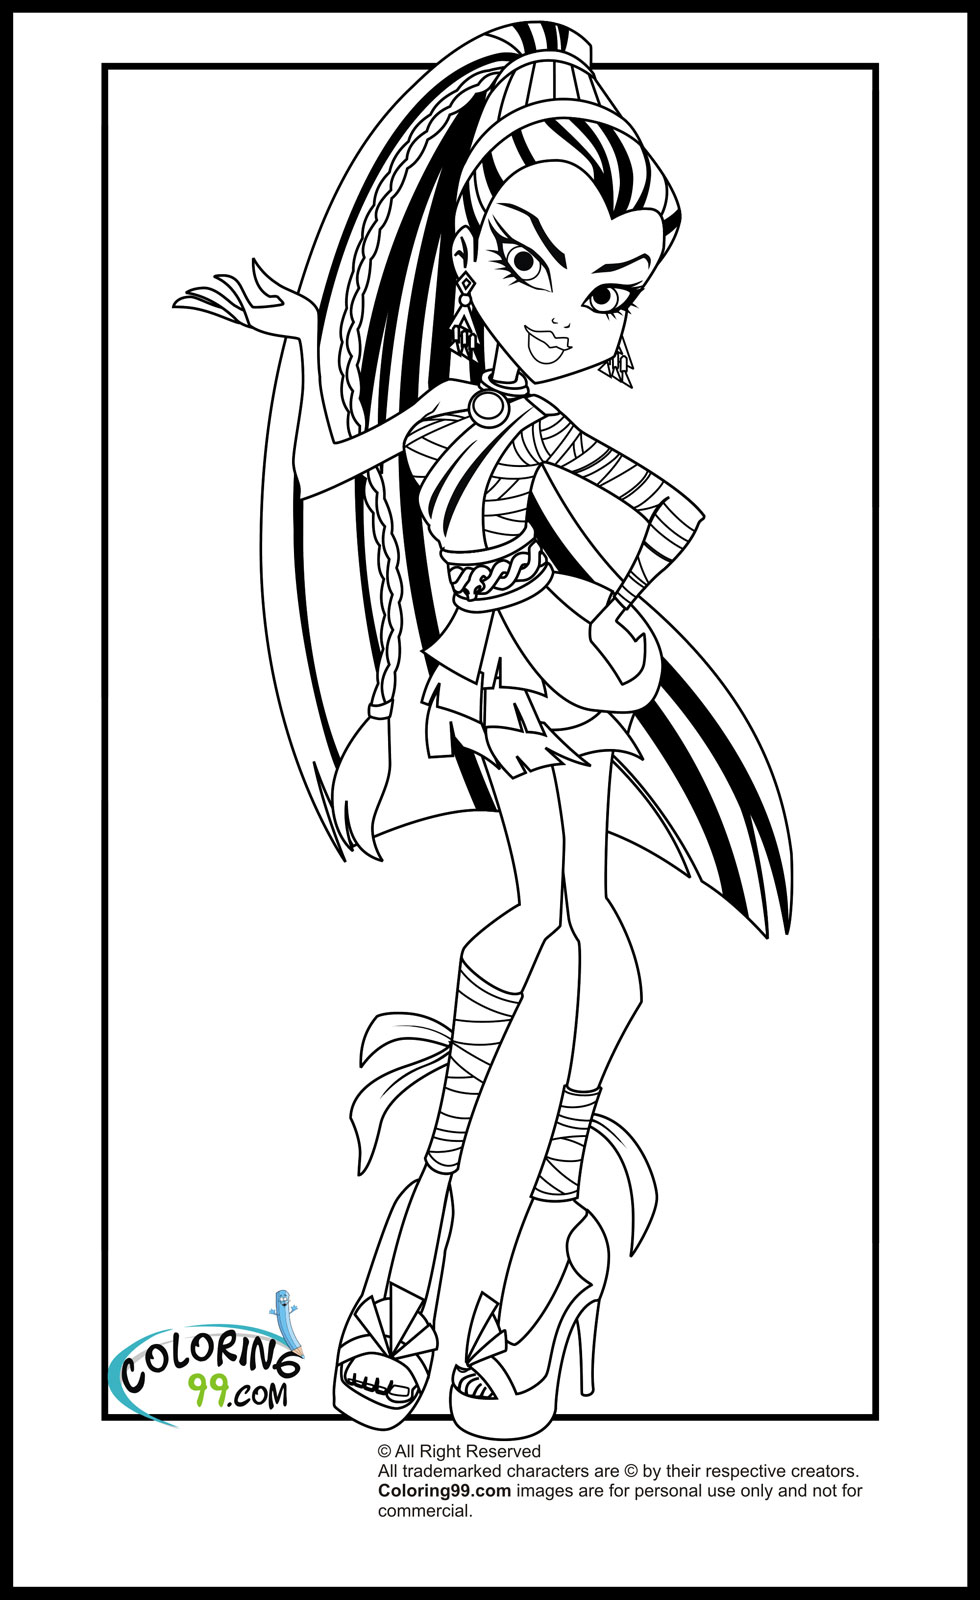 printable monster high colouring pages free printable monster high coloring pages february 2013 pages colouring monster printable high